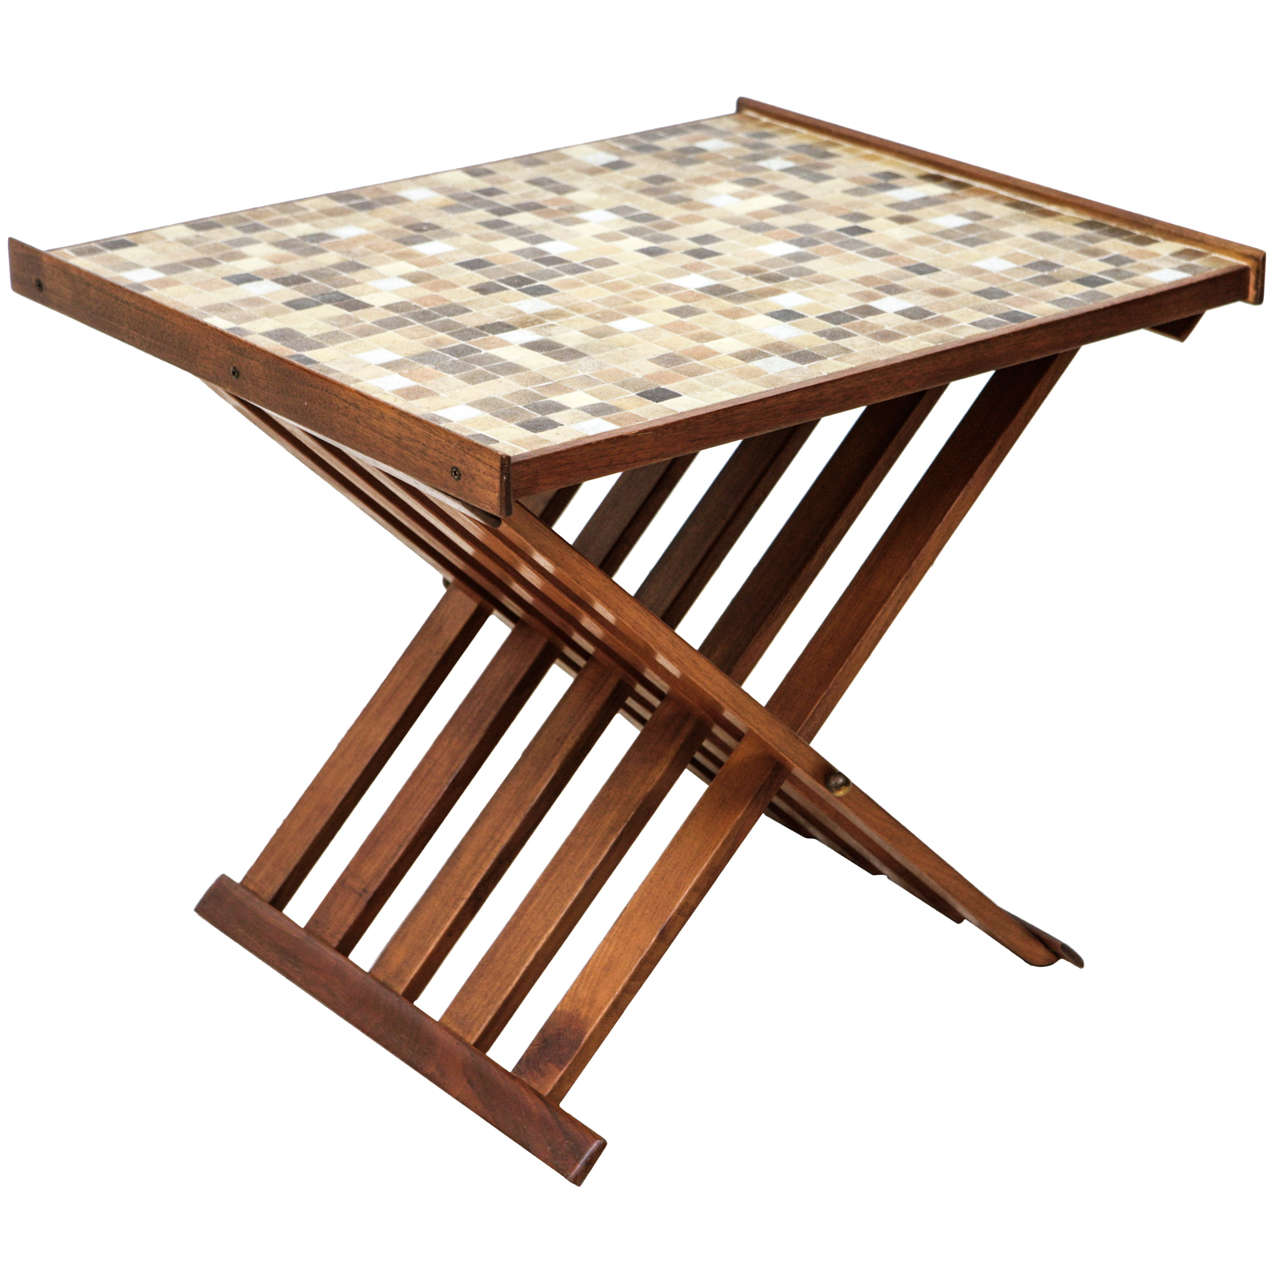 Folding Side Table : Glass Tile-Topped Folding Side Table at 1stdibs